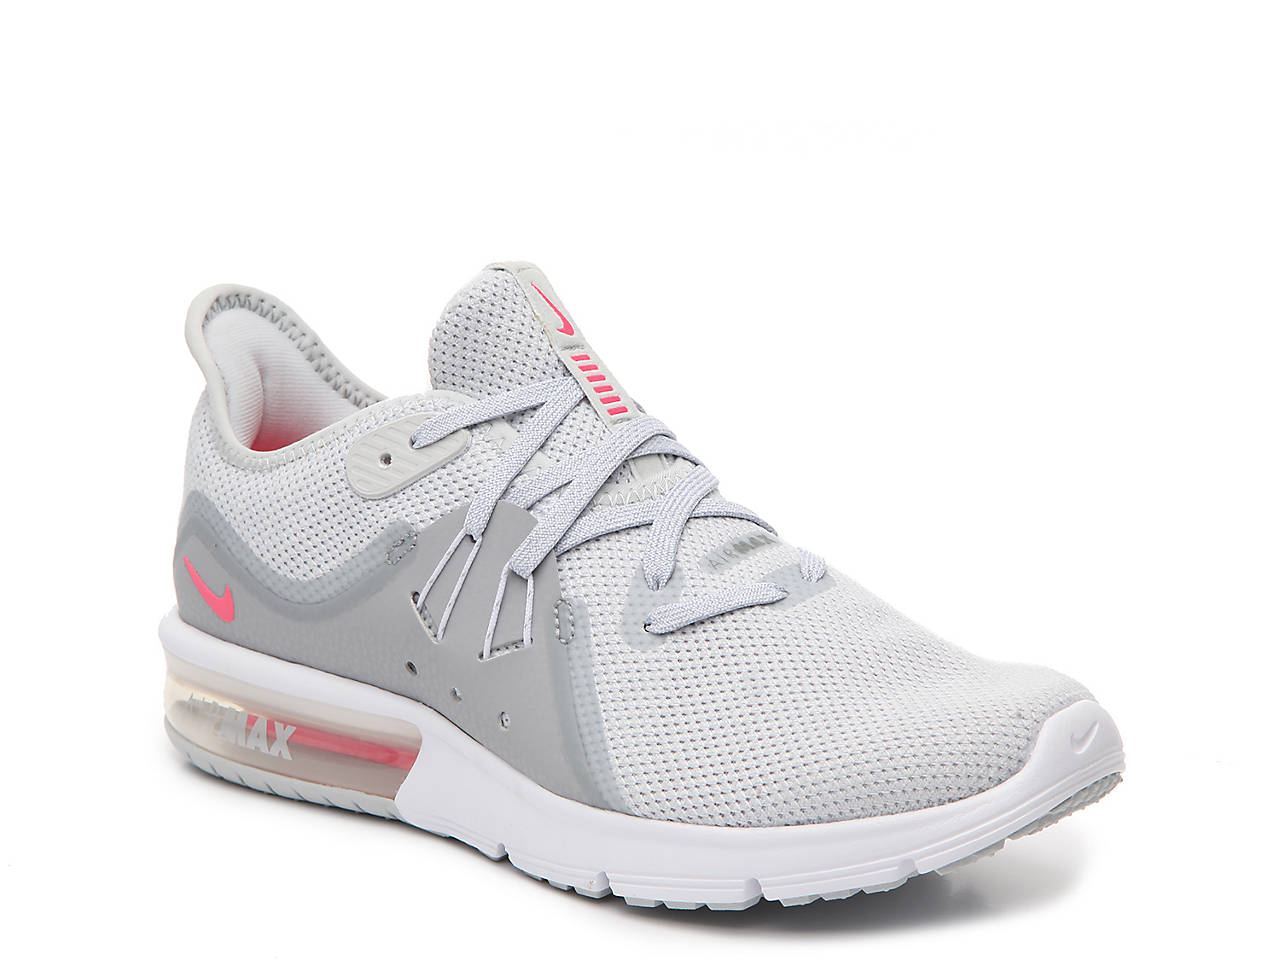 f348cfa90e0e Nike Air Max Sequent 3 Lightweight Running Shoe - Women s Women s ...